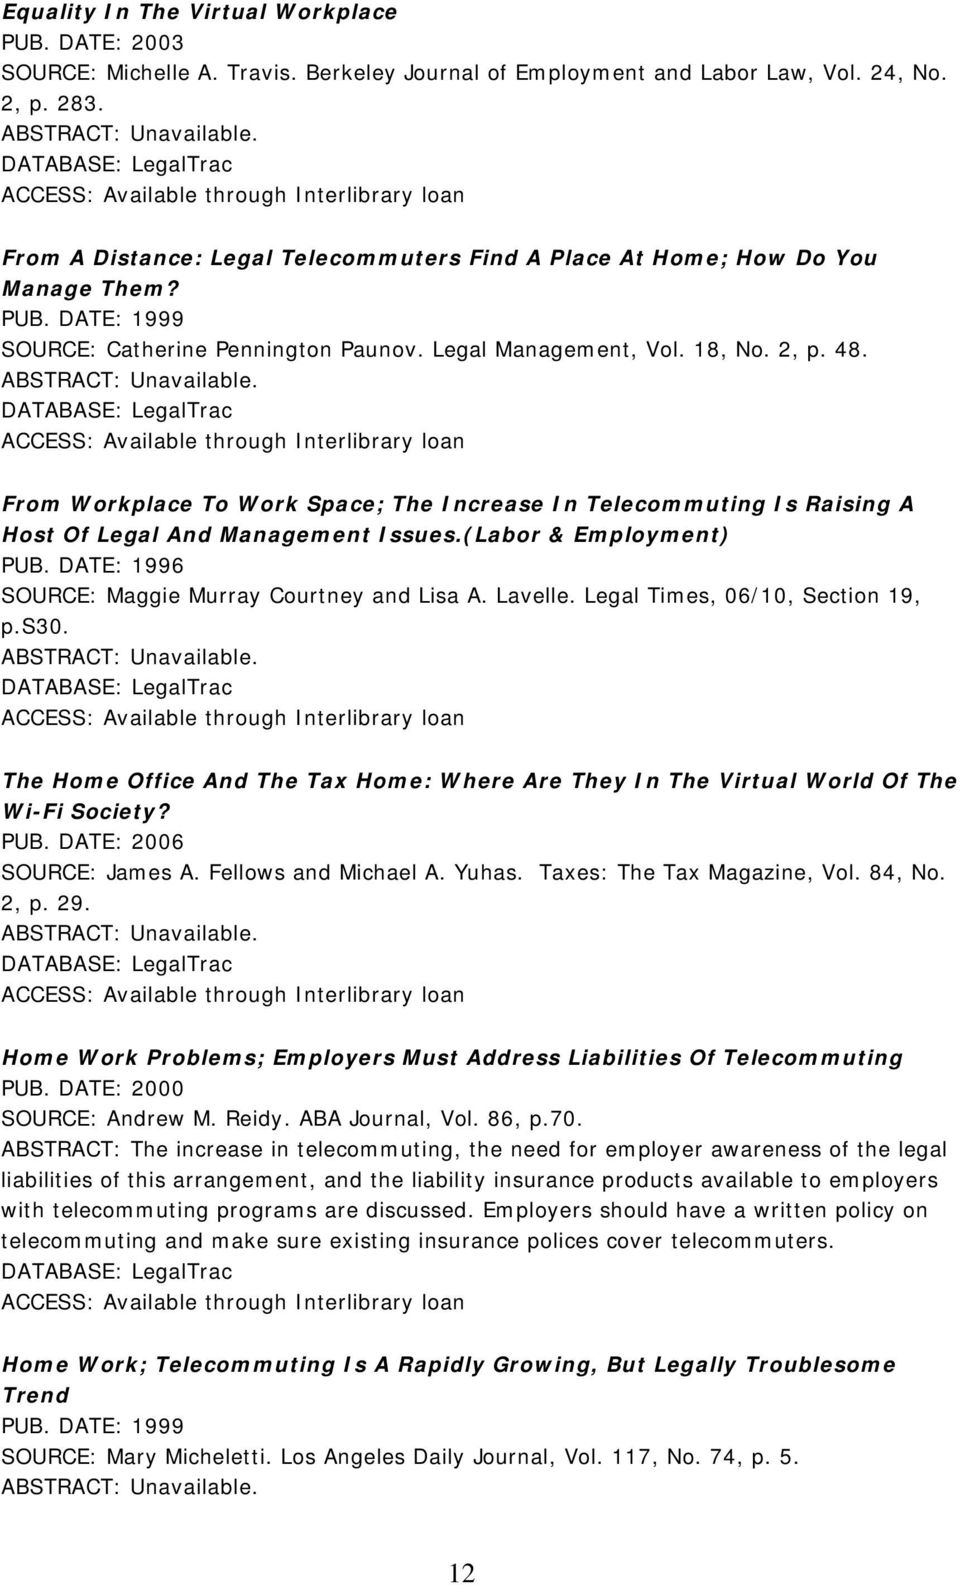 From Workplace To Work Space; The Increase In Telecommuting Is Raising A Host Of Legal And Management Issues.(Labor & Employment) PUB. DATE: 1996 SOURCE: Maggie Murray Courtney and Lisa A. Lavelle.